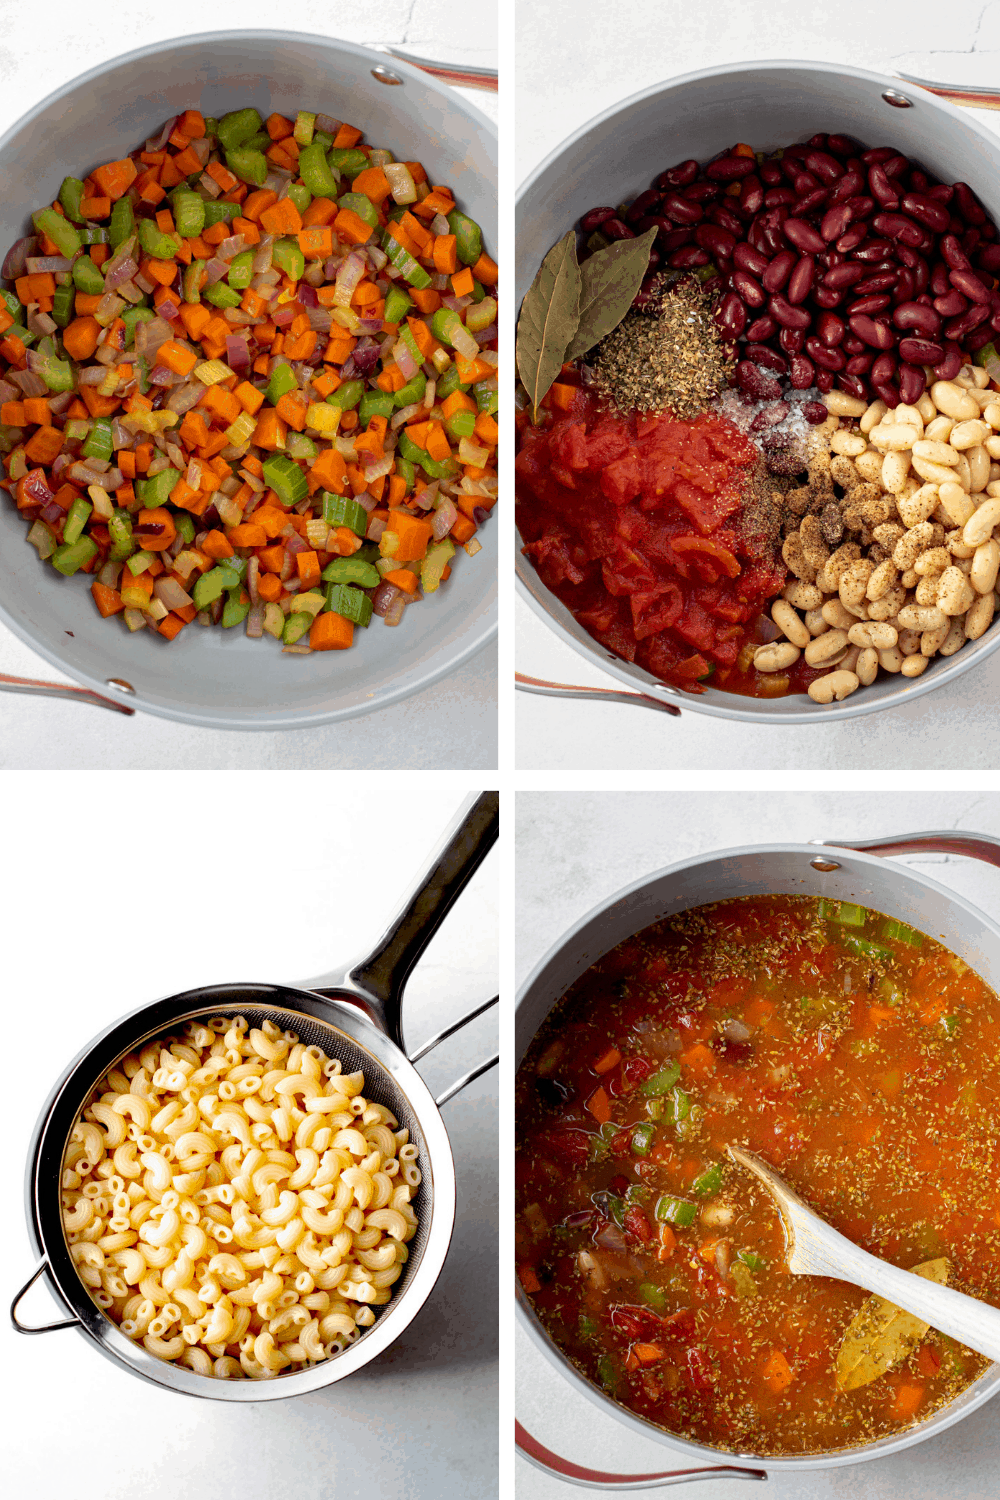 Images of the preparation of minestrone soup.